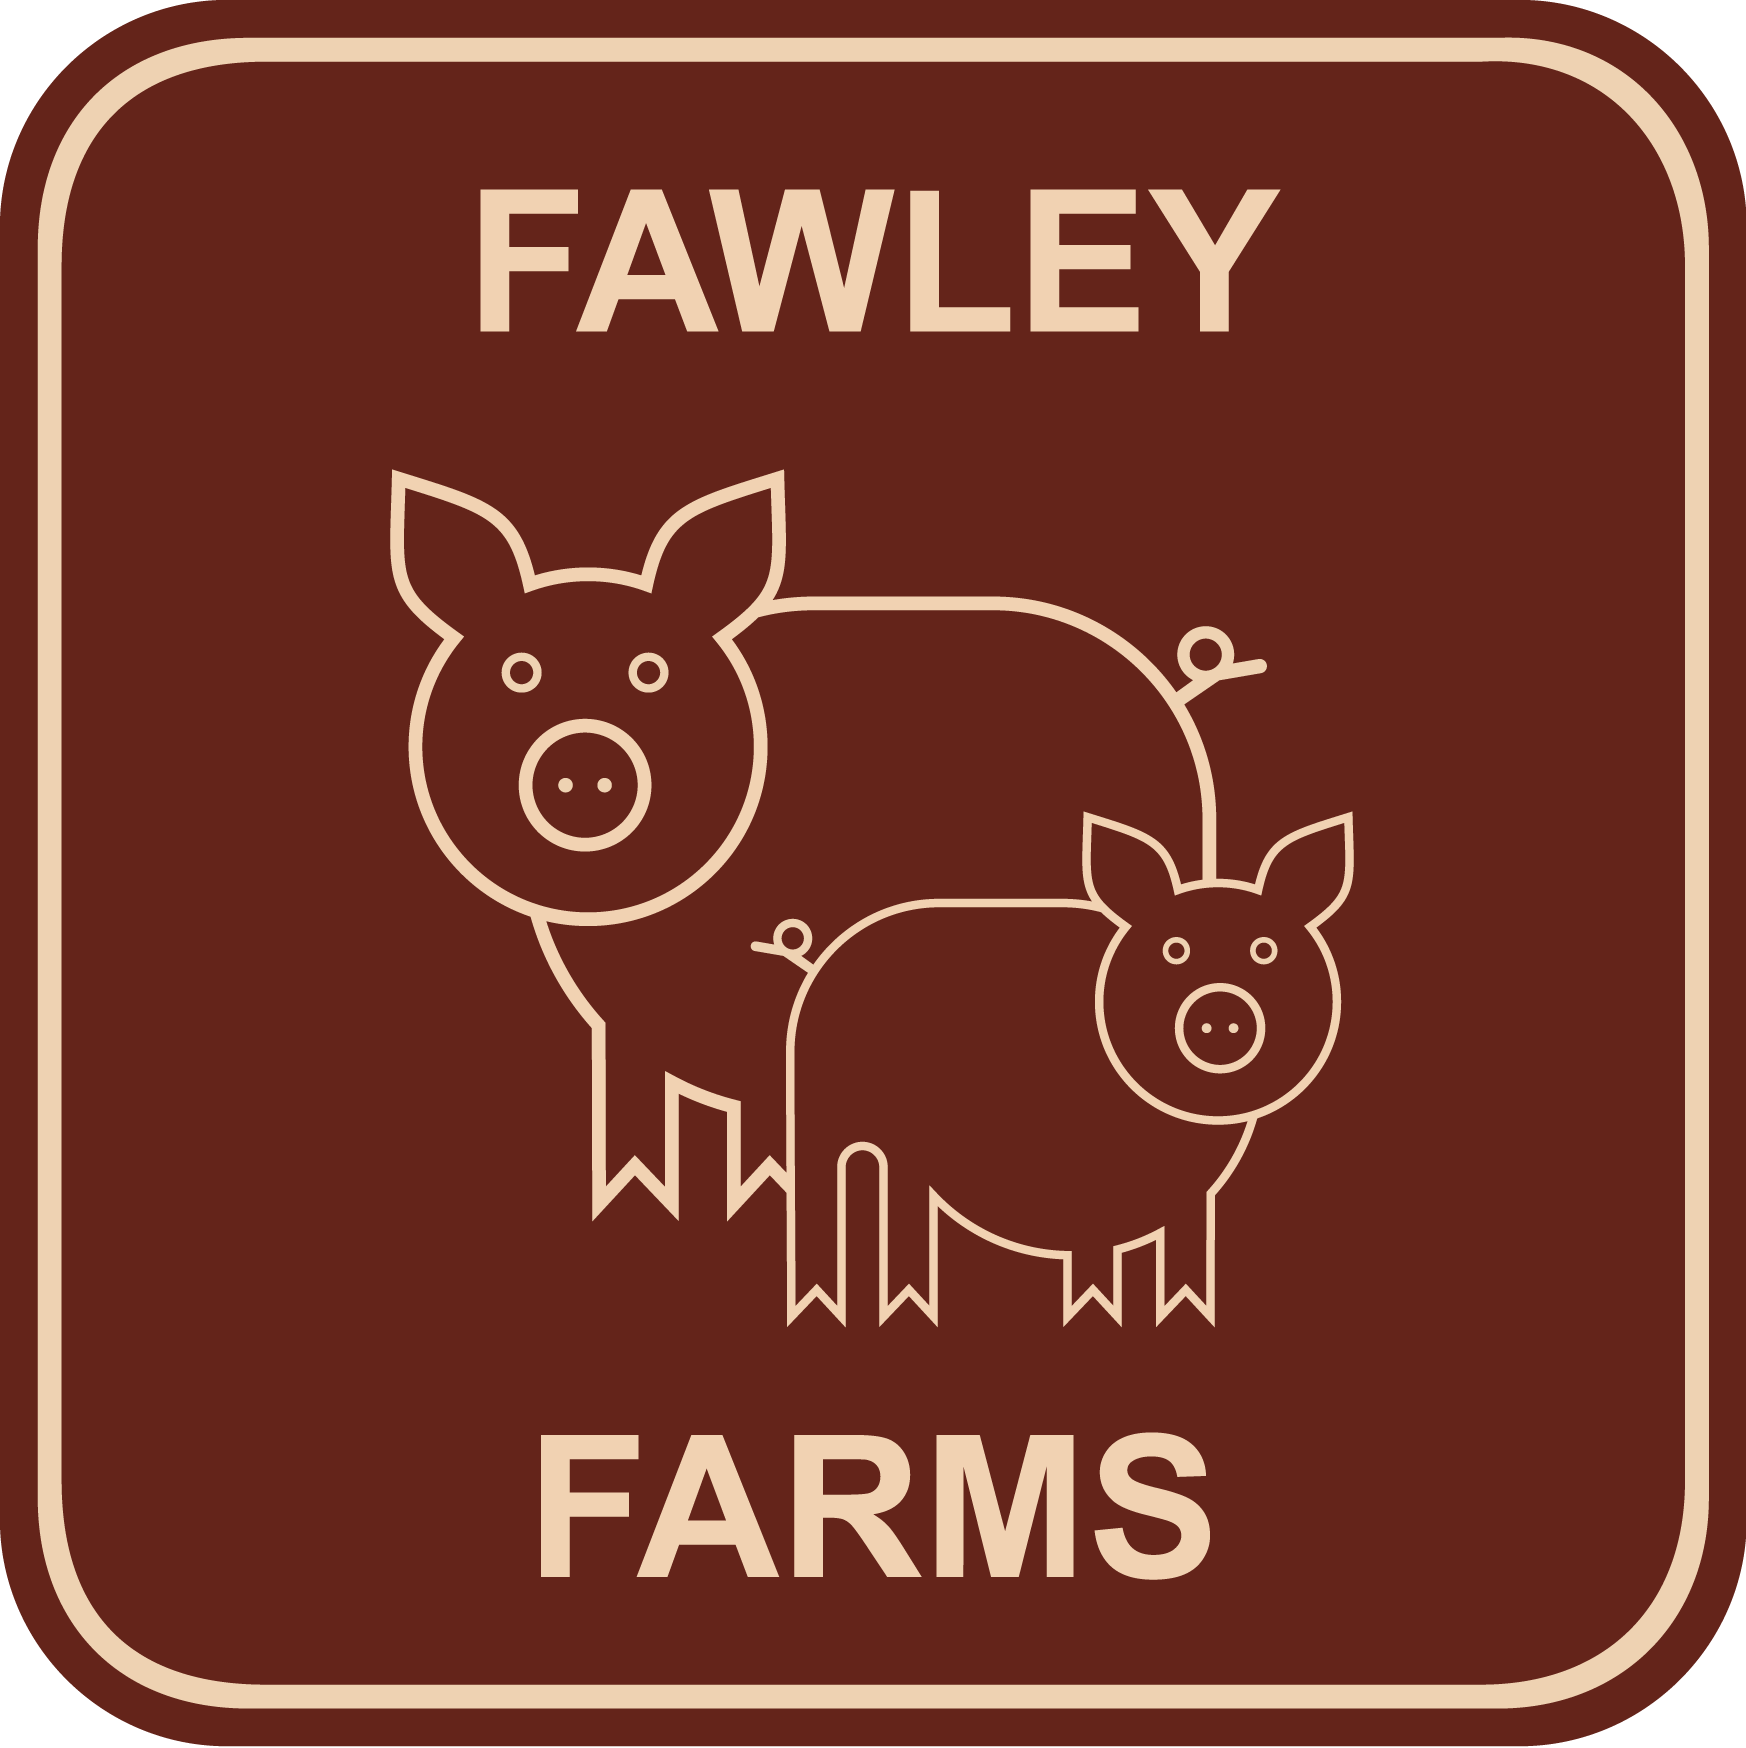 Fawley Farms Limited